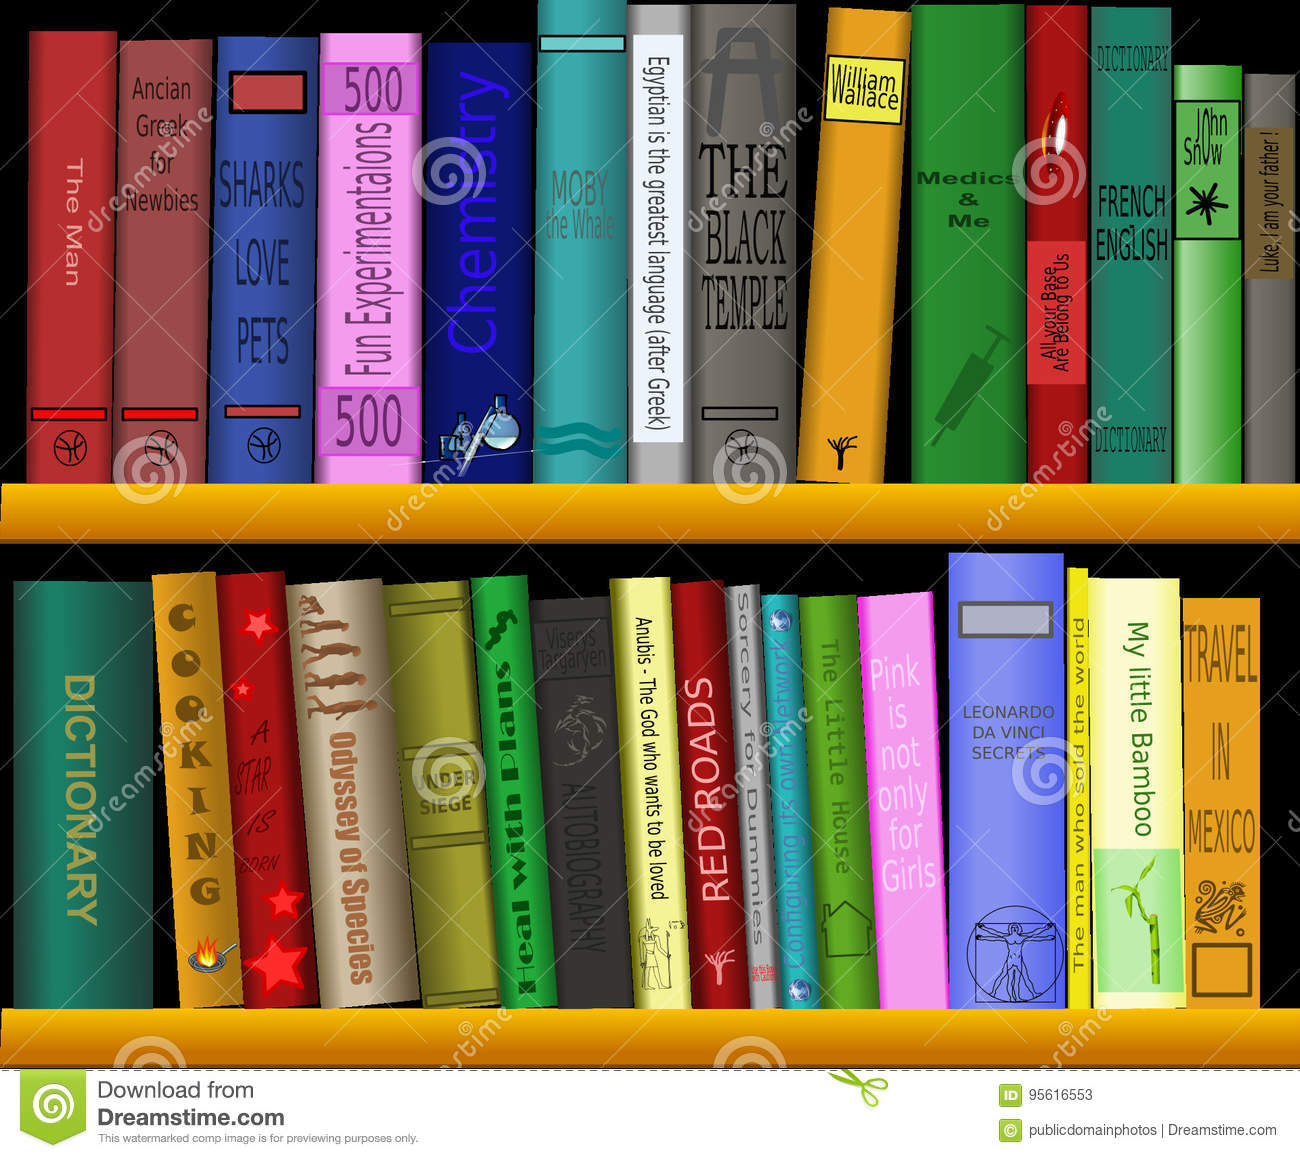 Text, Book, Library Science, Self Help Book Picture  Image